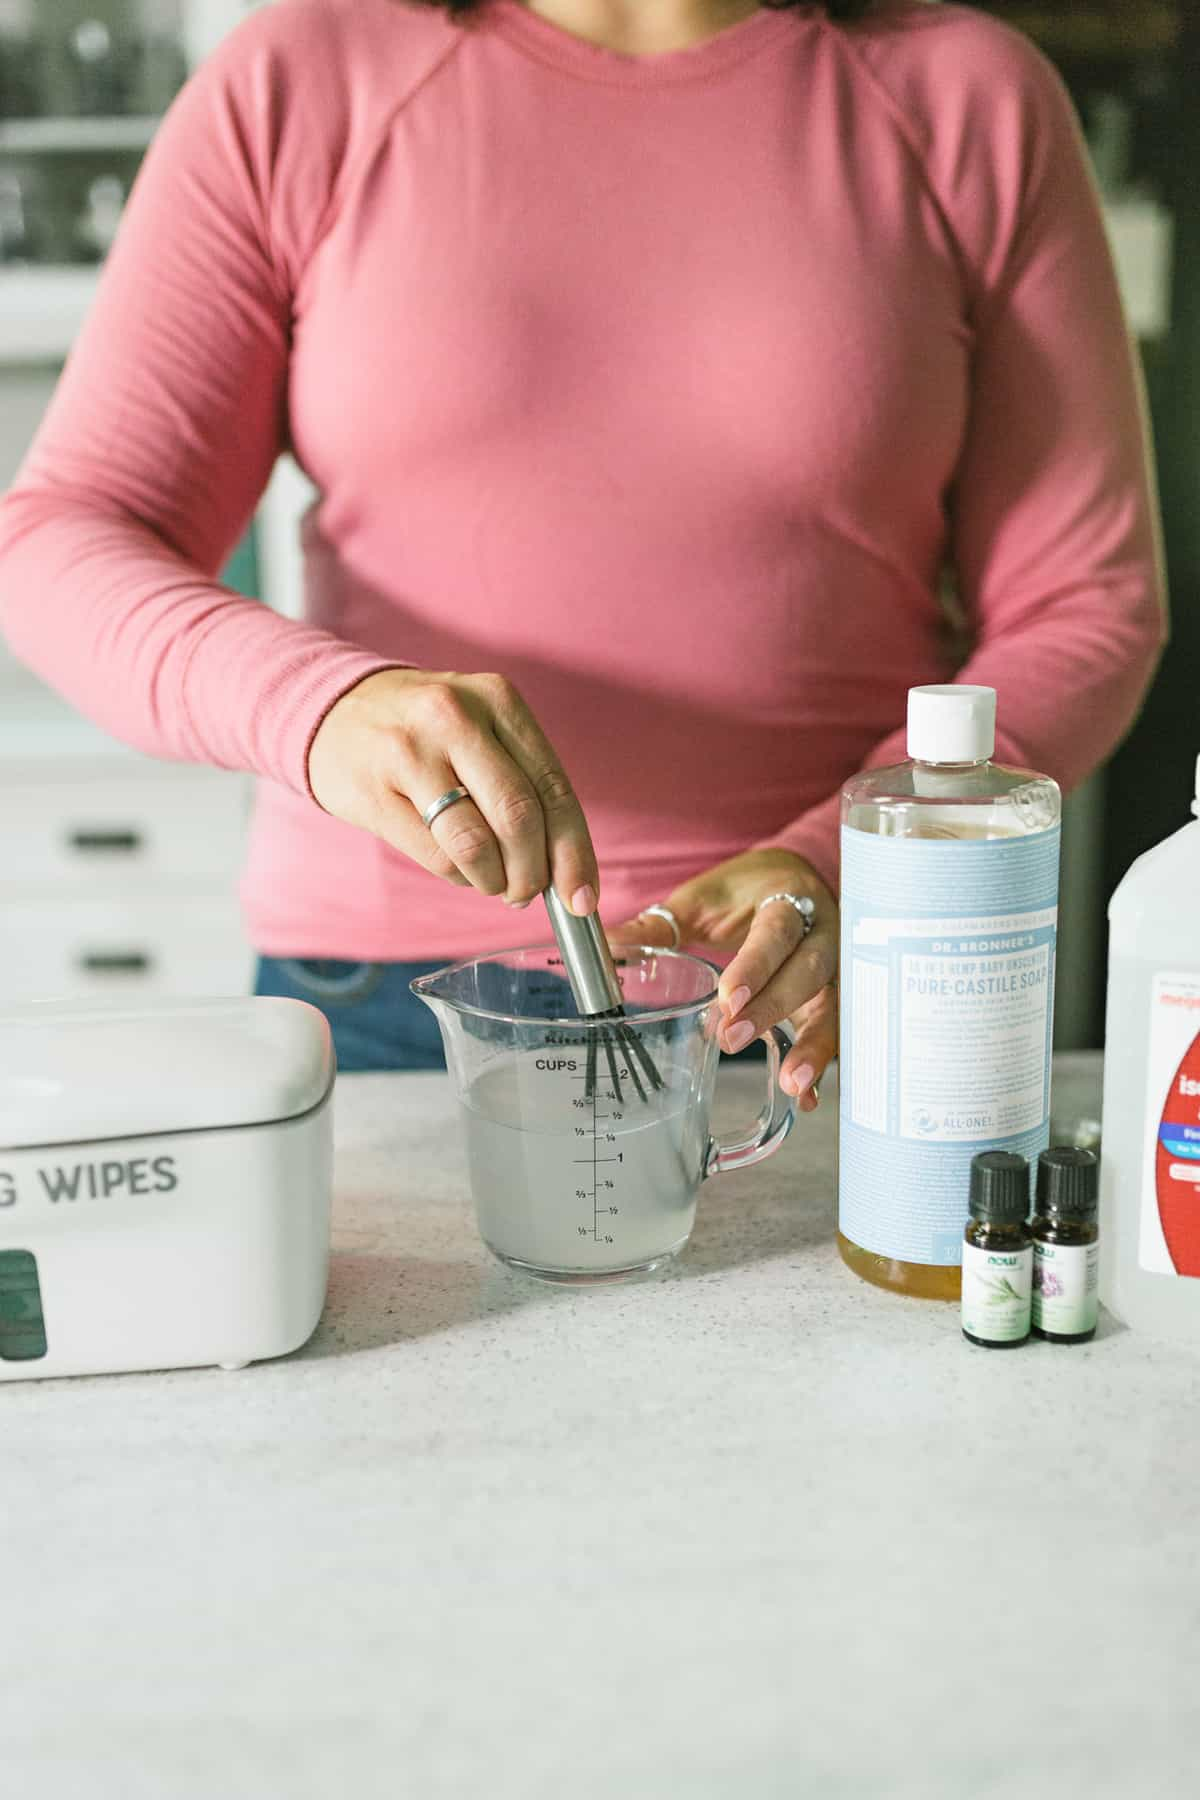 Woman in a pink shirt whisking together a cleaning solution for DIY Disinfecting Wipes